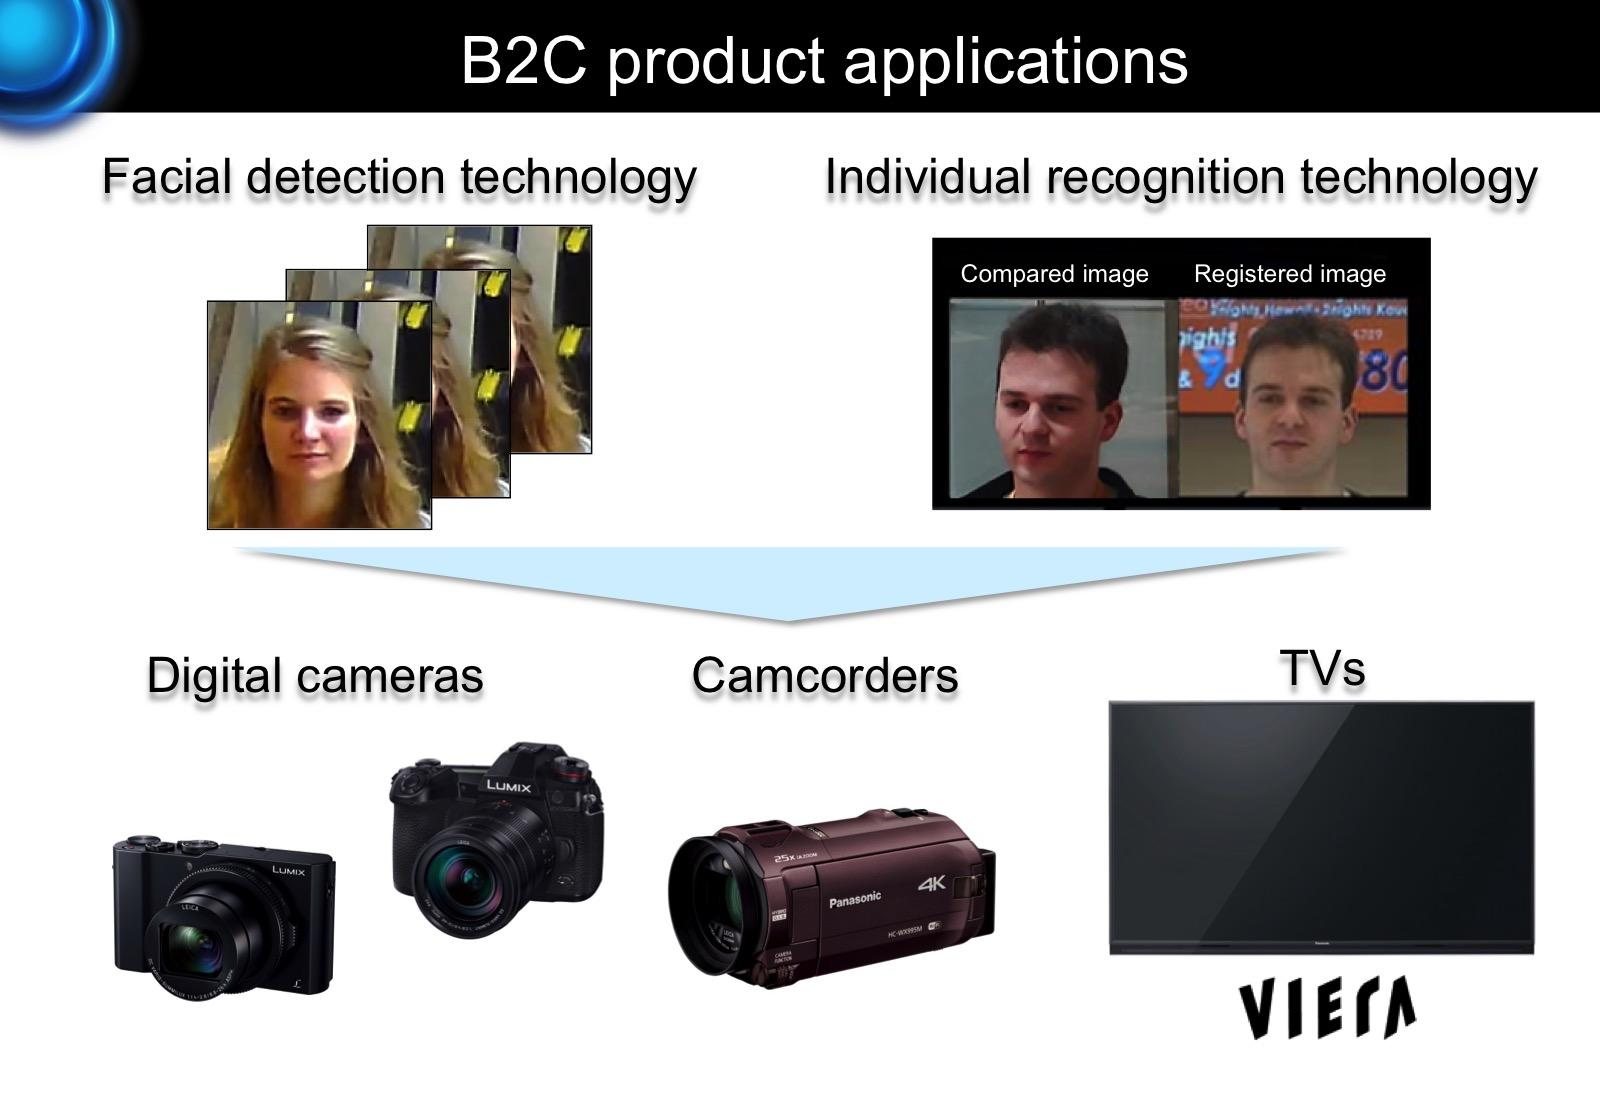 image: panasonic's facial recognition solution applications for consumer products